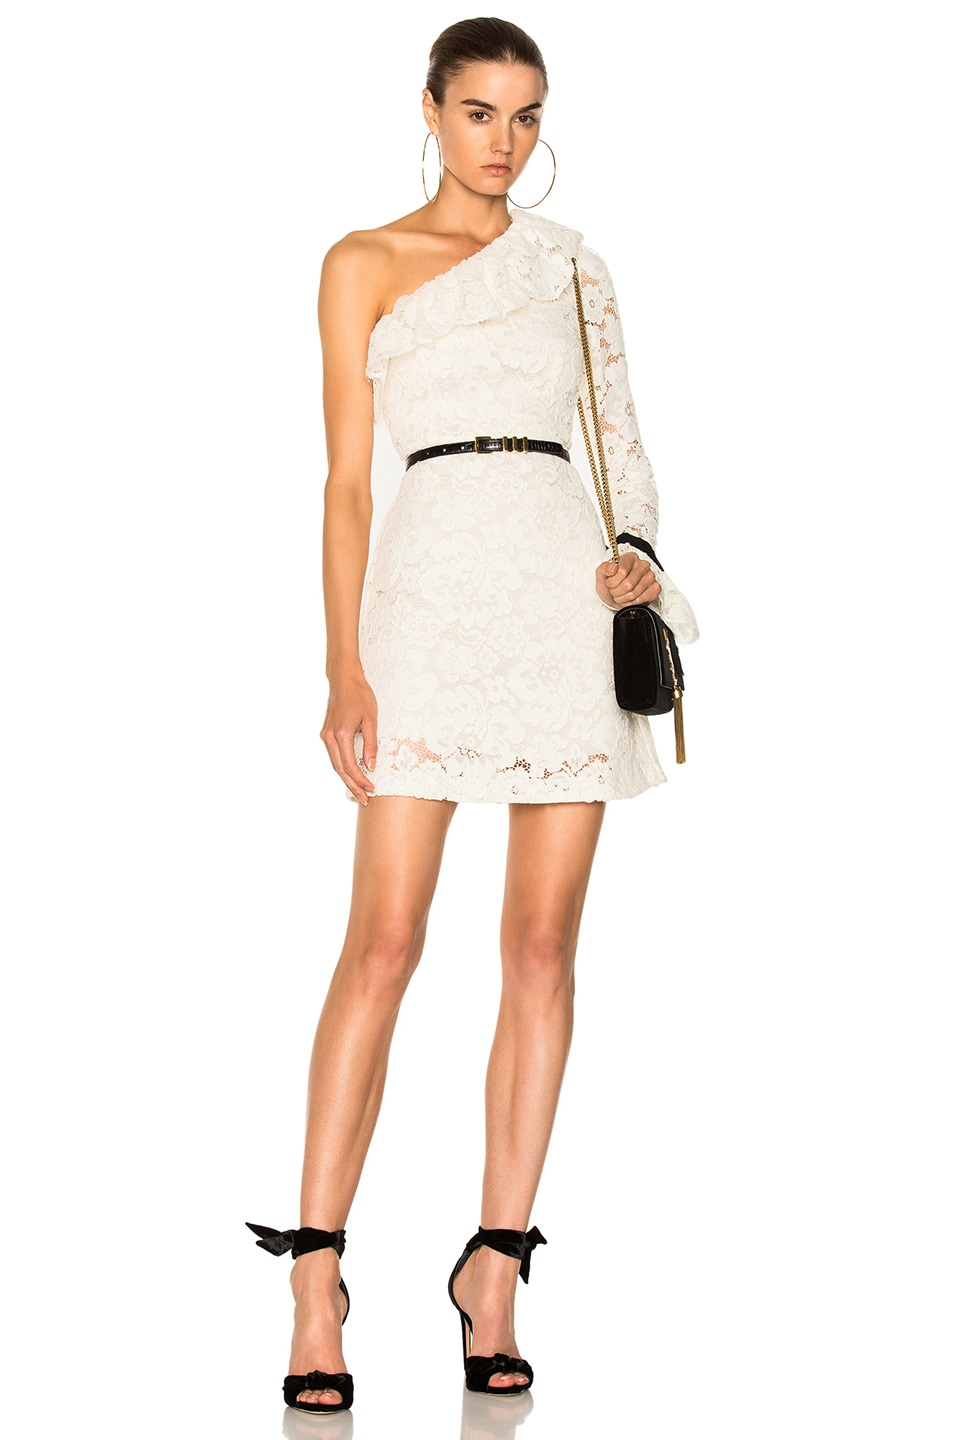 Cheapest Price Online Philosophy Di Lorenzo Serafini one-shoulder lace dress Prices Sale Online Shop Offer Online Outlet Free Shipping t9ZstBoV1